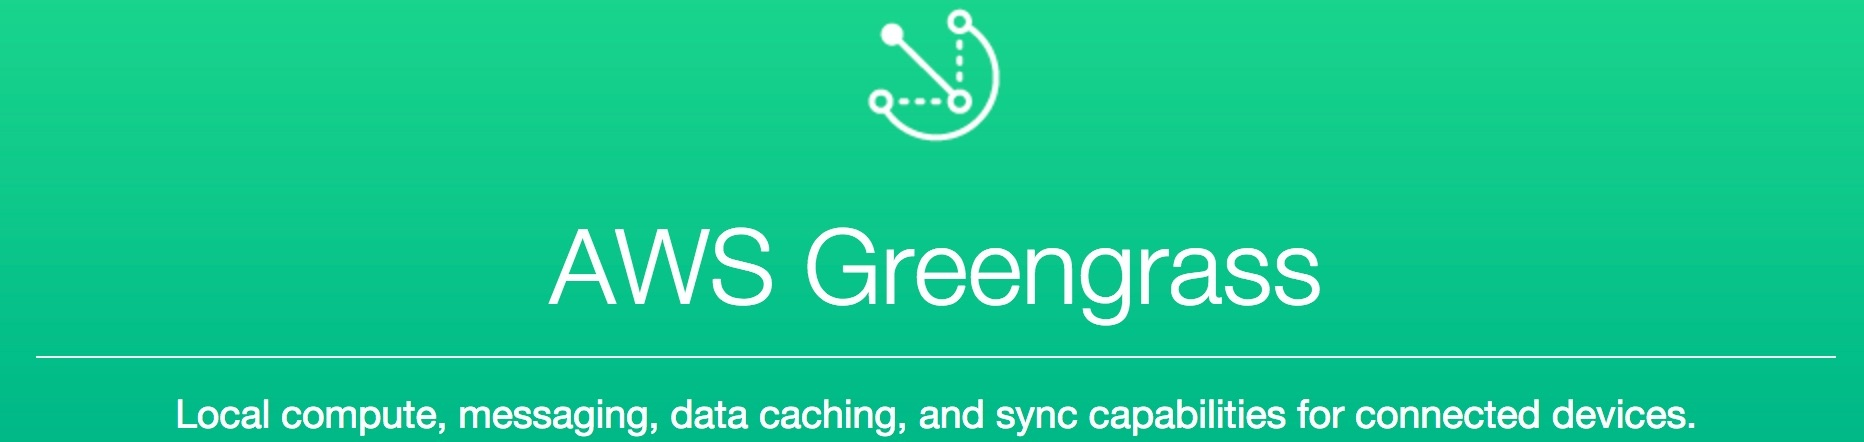 Using AWS Greengrass to Enable IoT Edge Computing